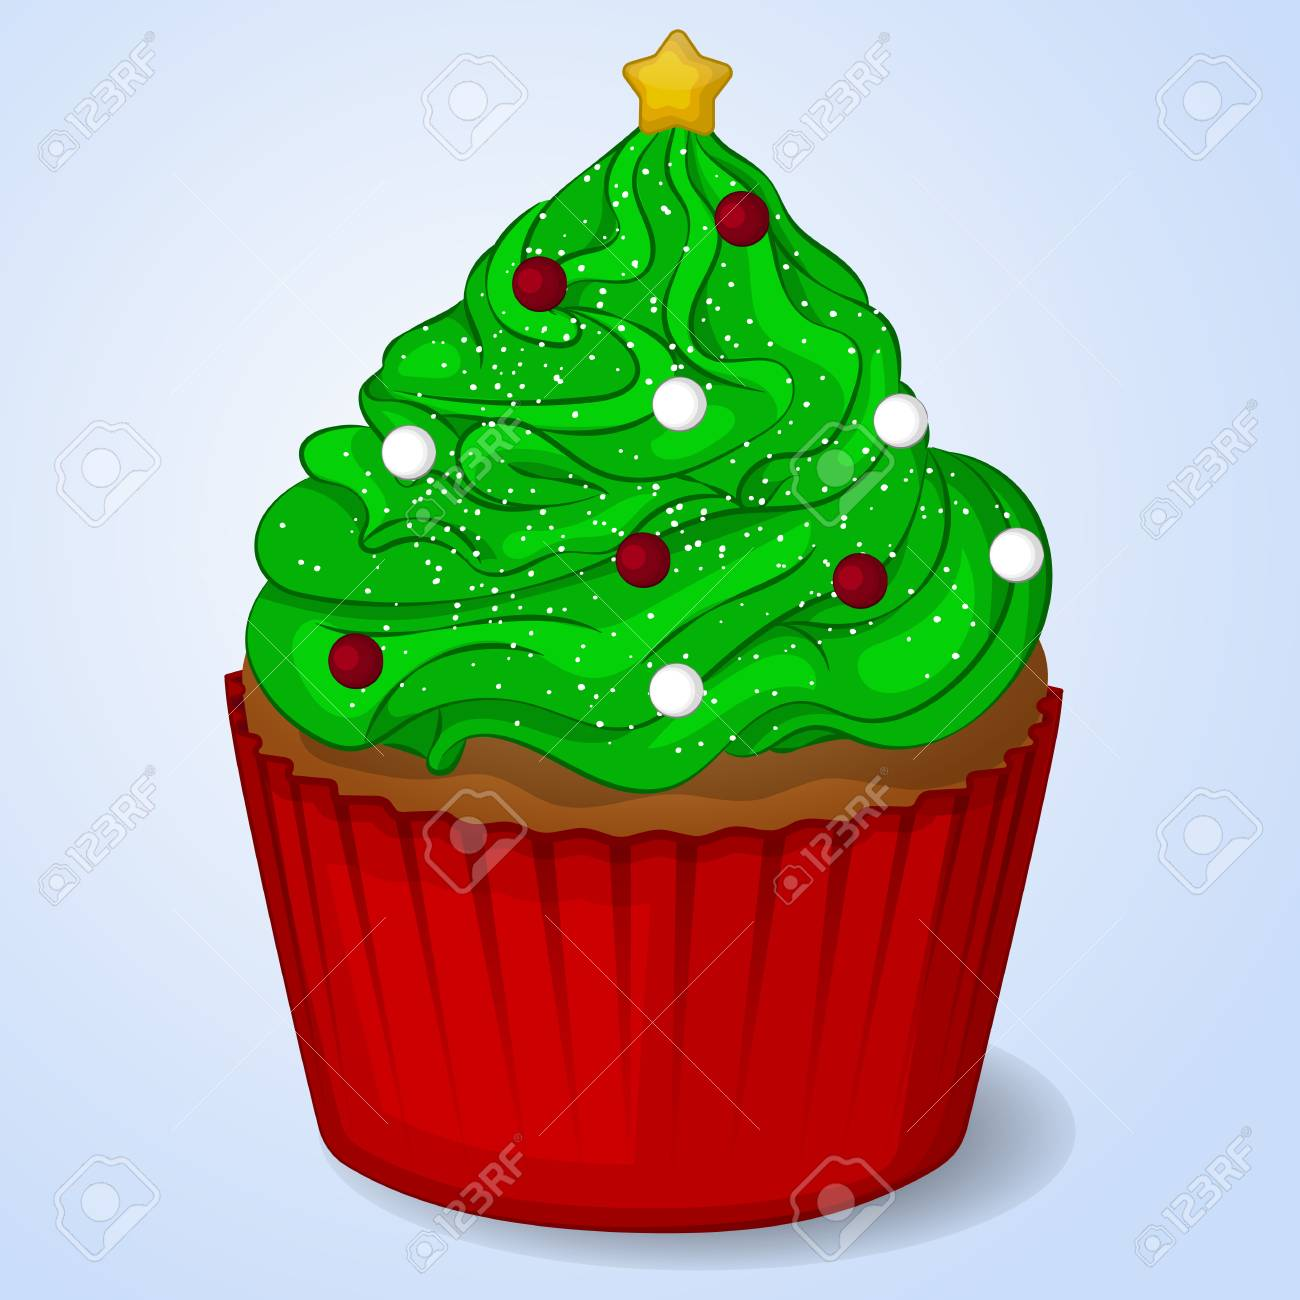 Sweet And Delicious Christmas Cupcake For New Year Design. Simple ...